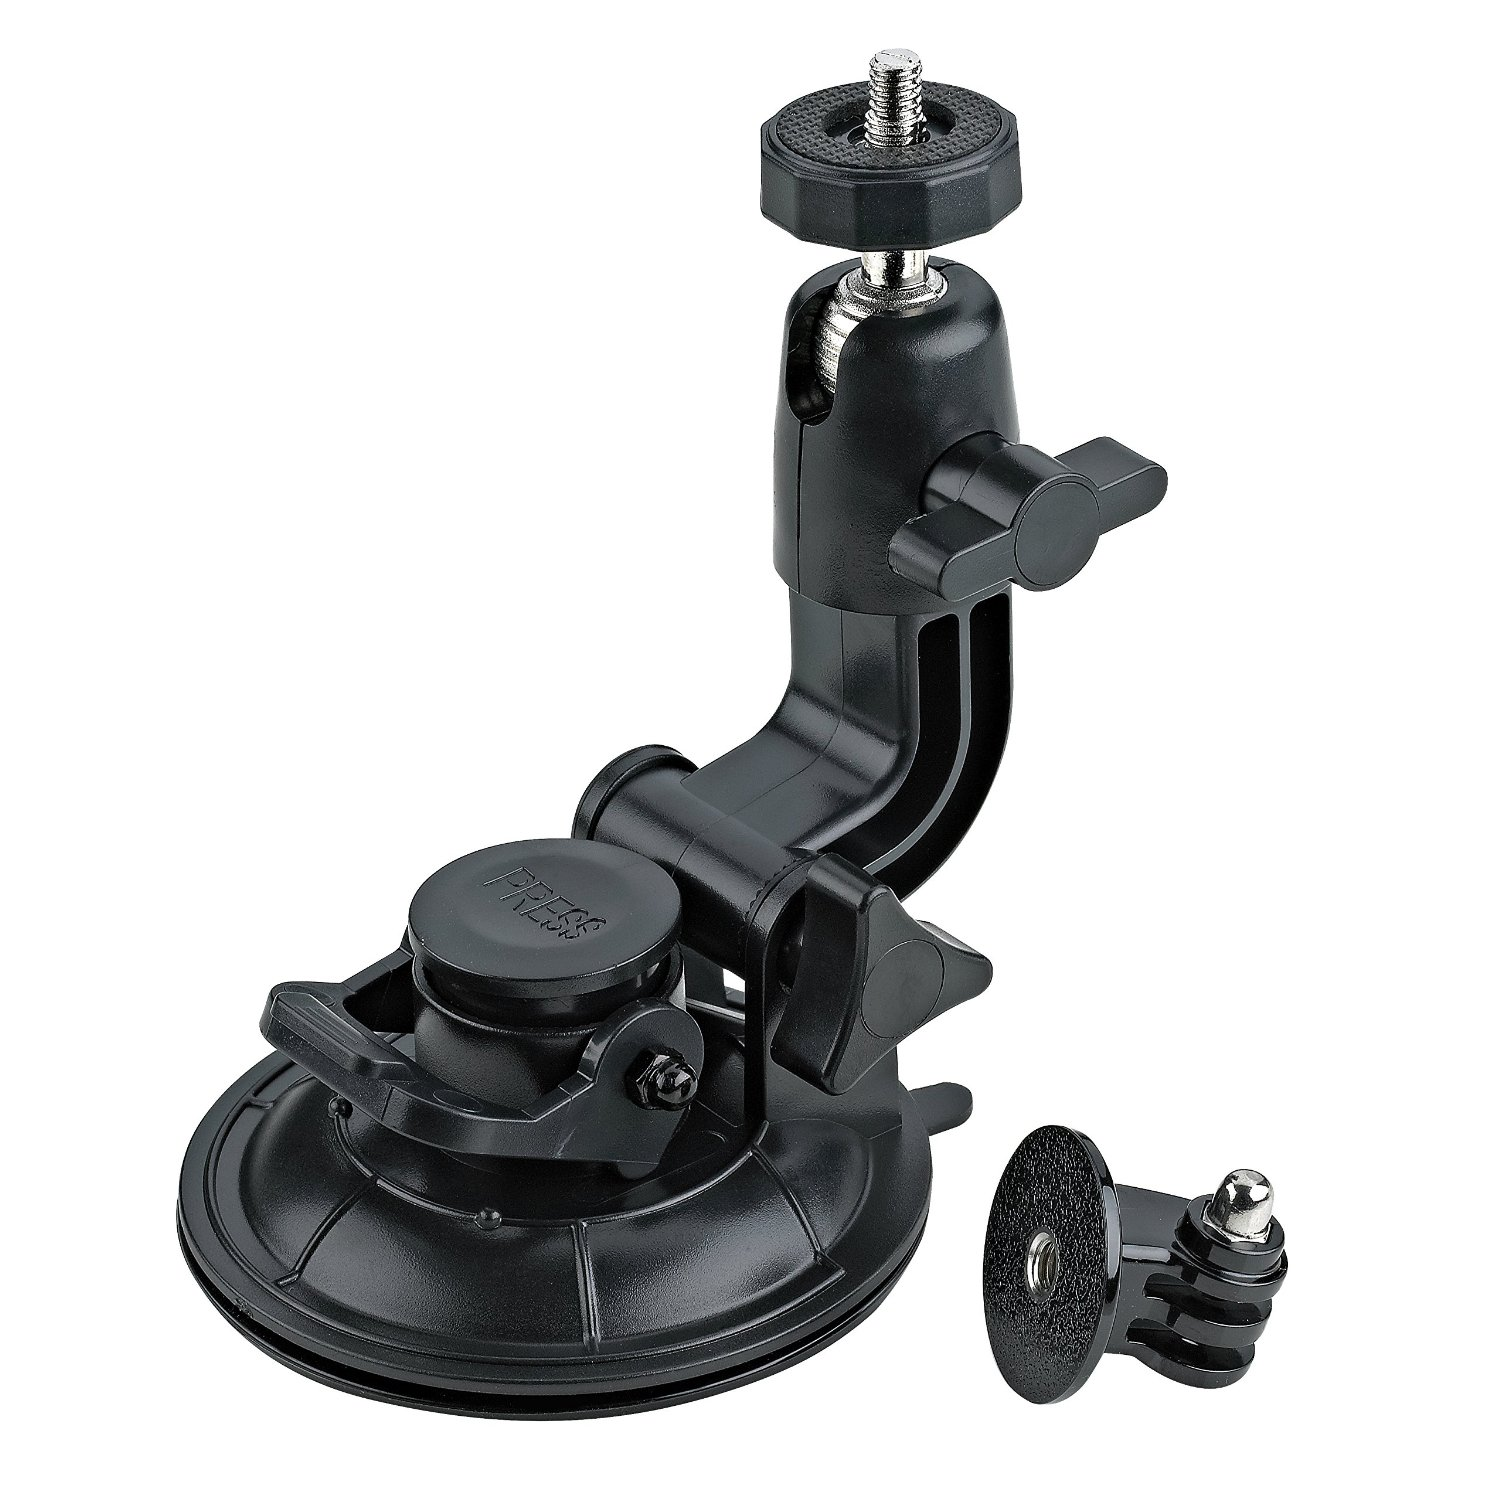 Foray 360ᄚ Adjustable Suction Cup Mount